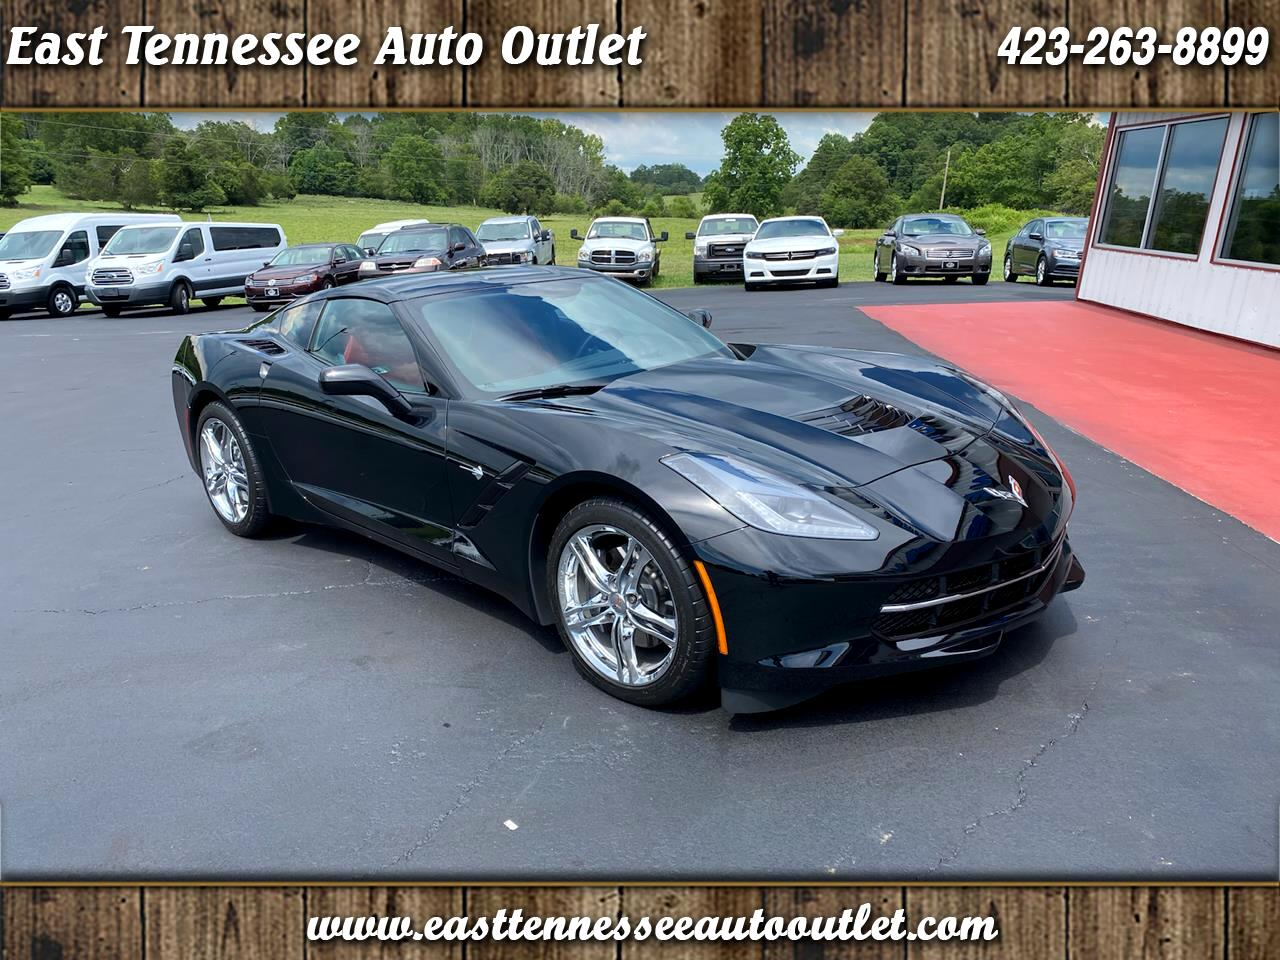 Chevrolet Corvette 2dr Stingray Cpe w/1LT 2017